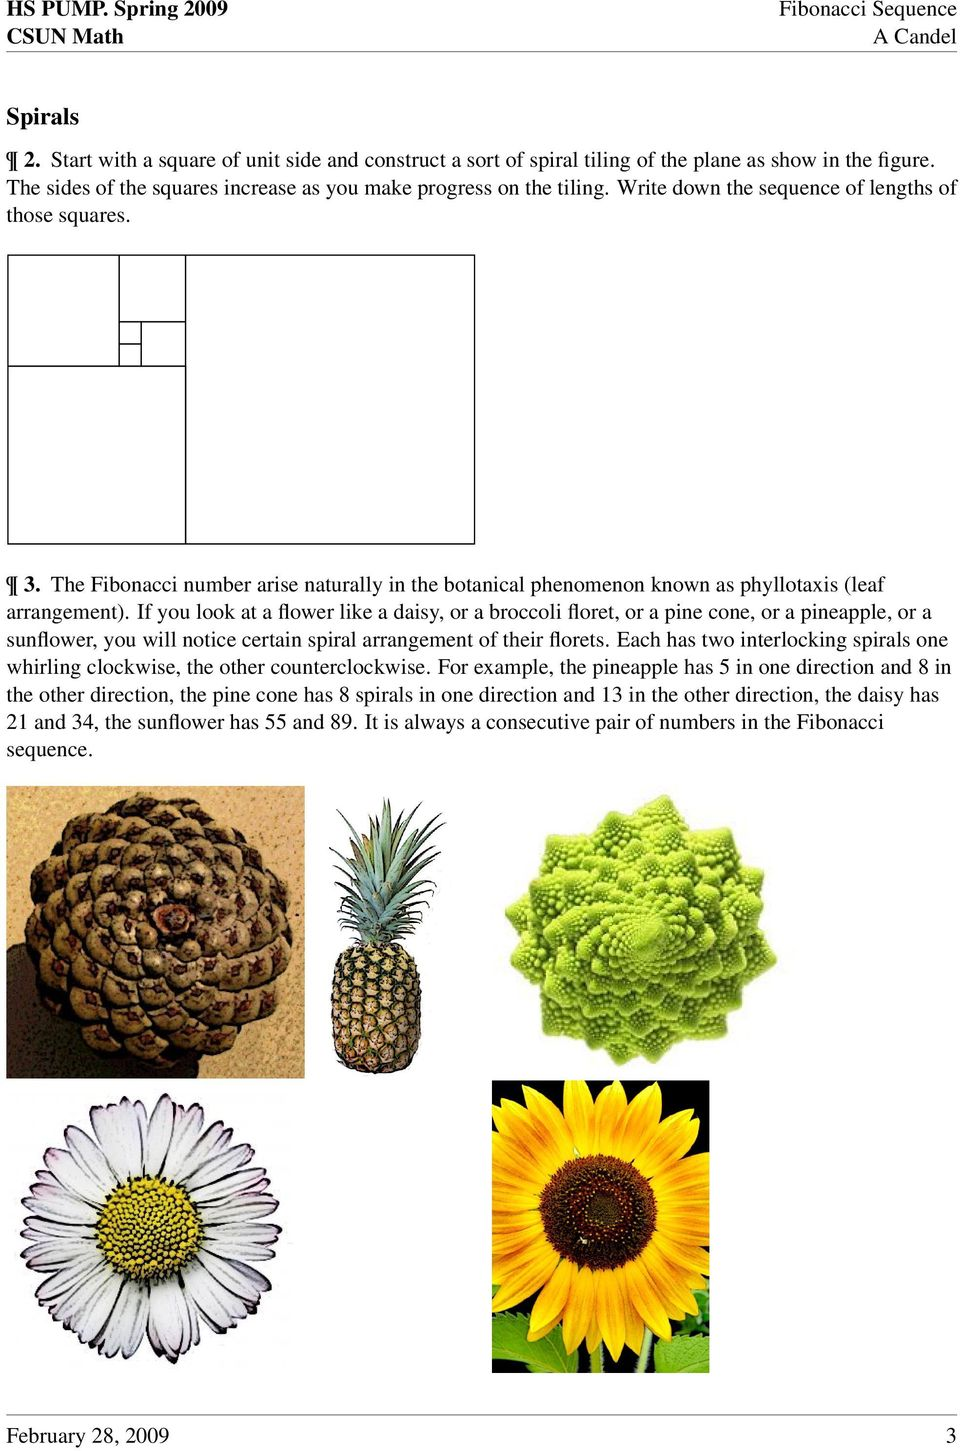 If you look at a flower like a daisy, or a broccoli floret, or a pine cone, or a pineapple, or a sunflower, you will notice certain spiral arrangement of their florets.